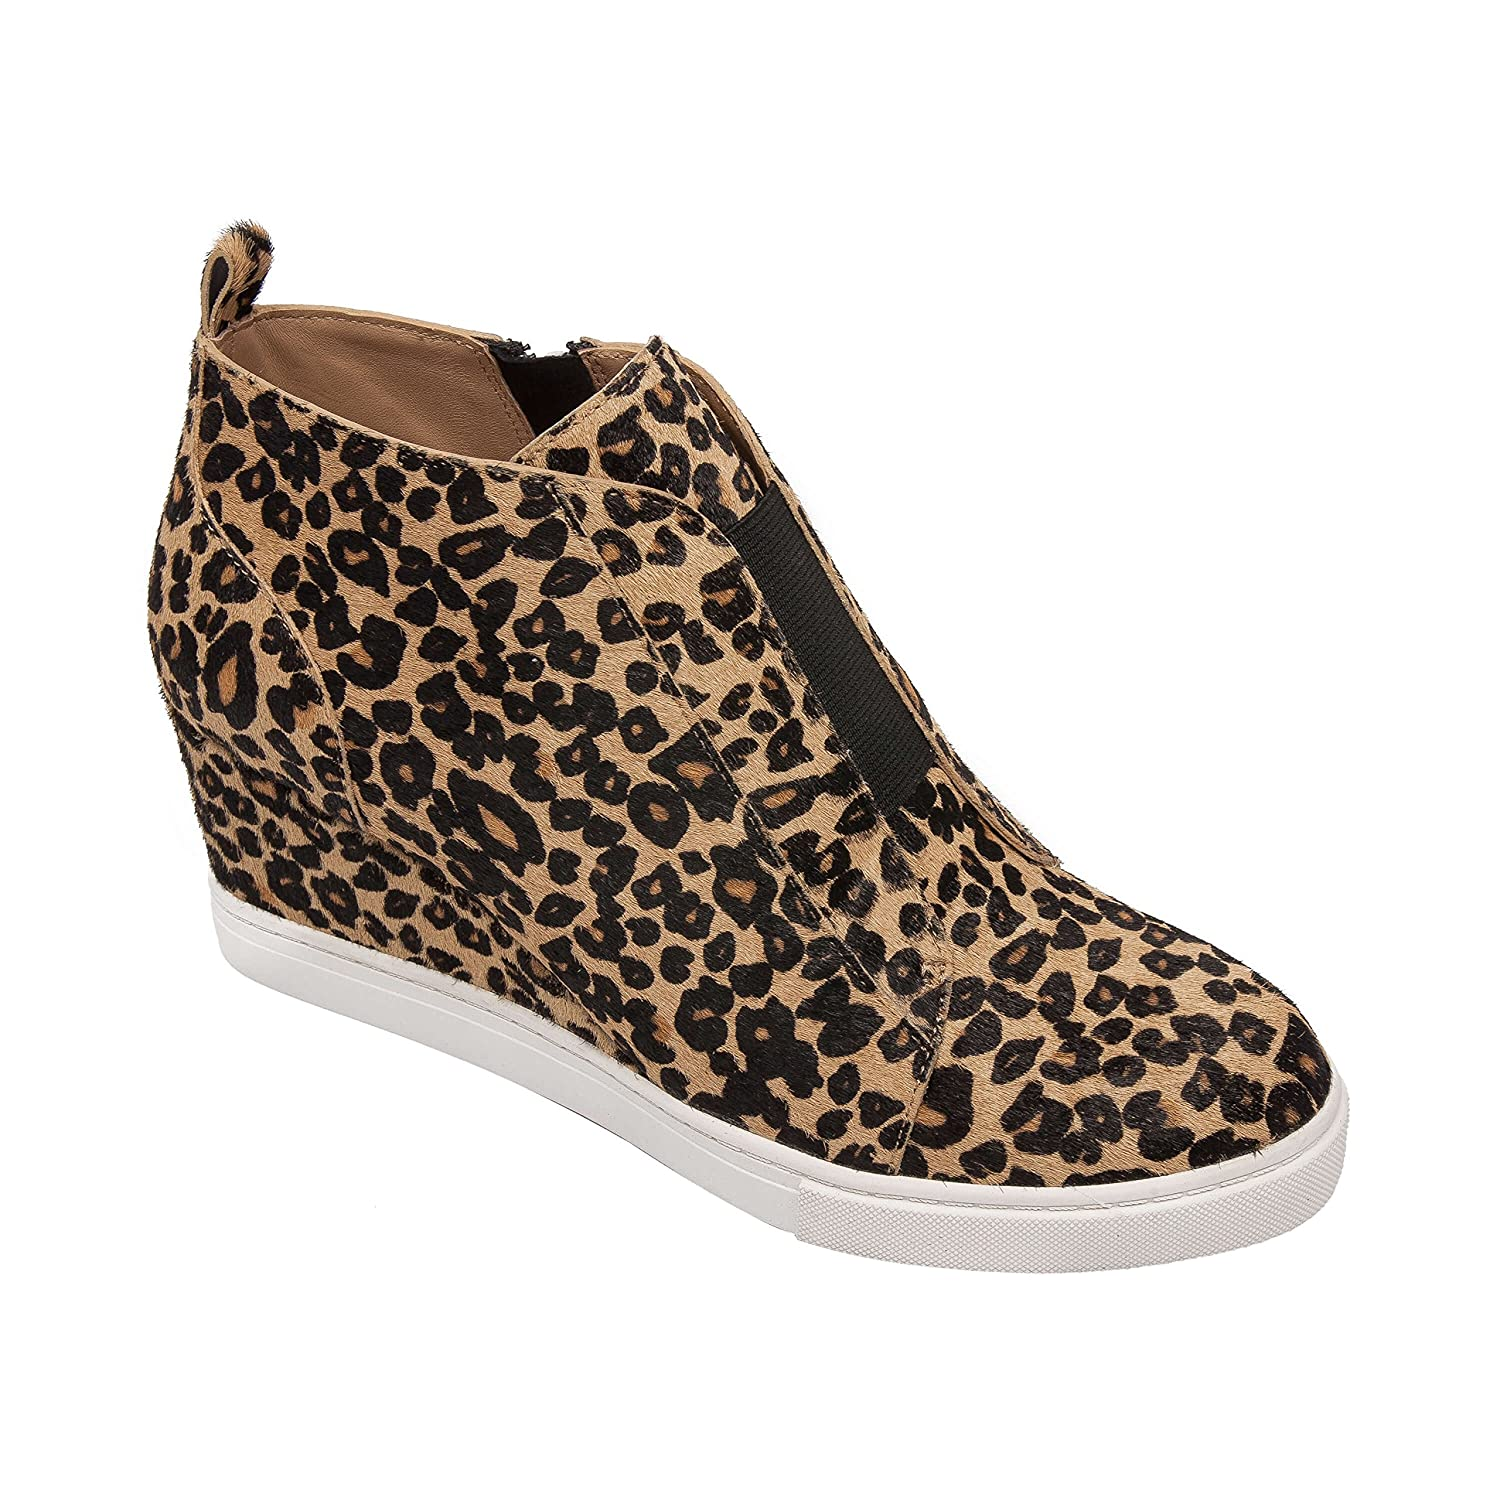 Felicia | Women's Platform Wedge Bootie Sneaker Leather Or Suede B07F75VFTY 5 M US|Sand/Black Leopard Print Hair Calf